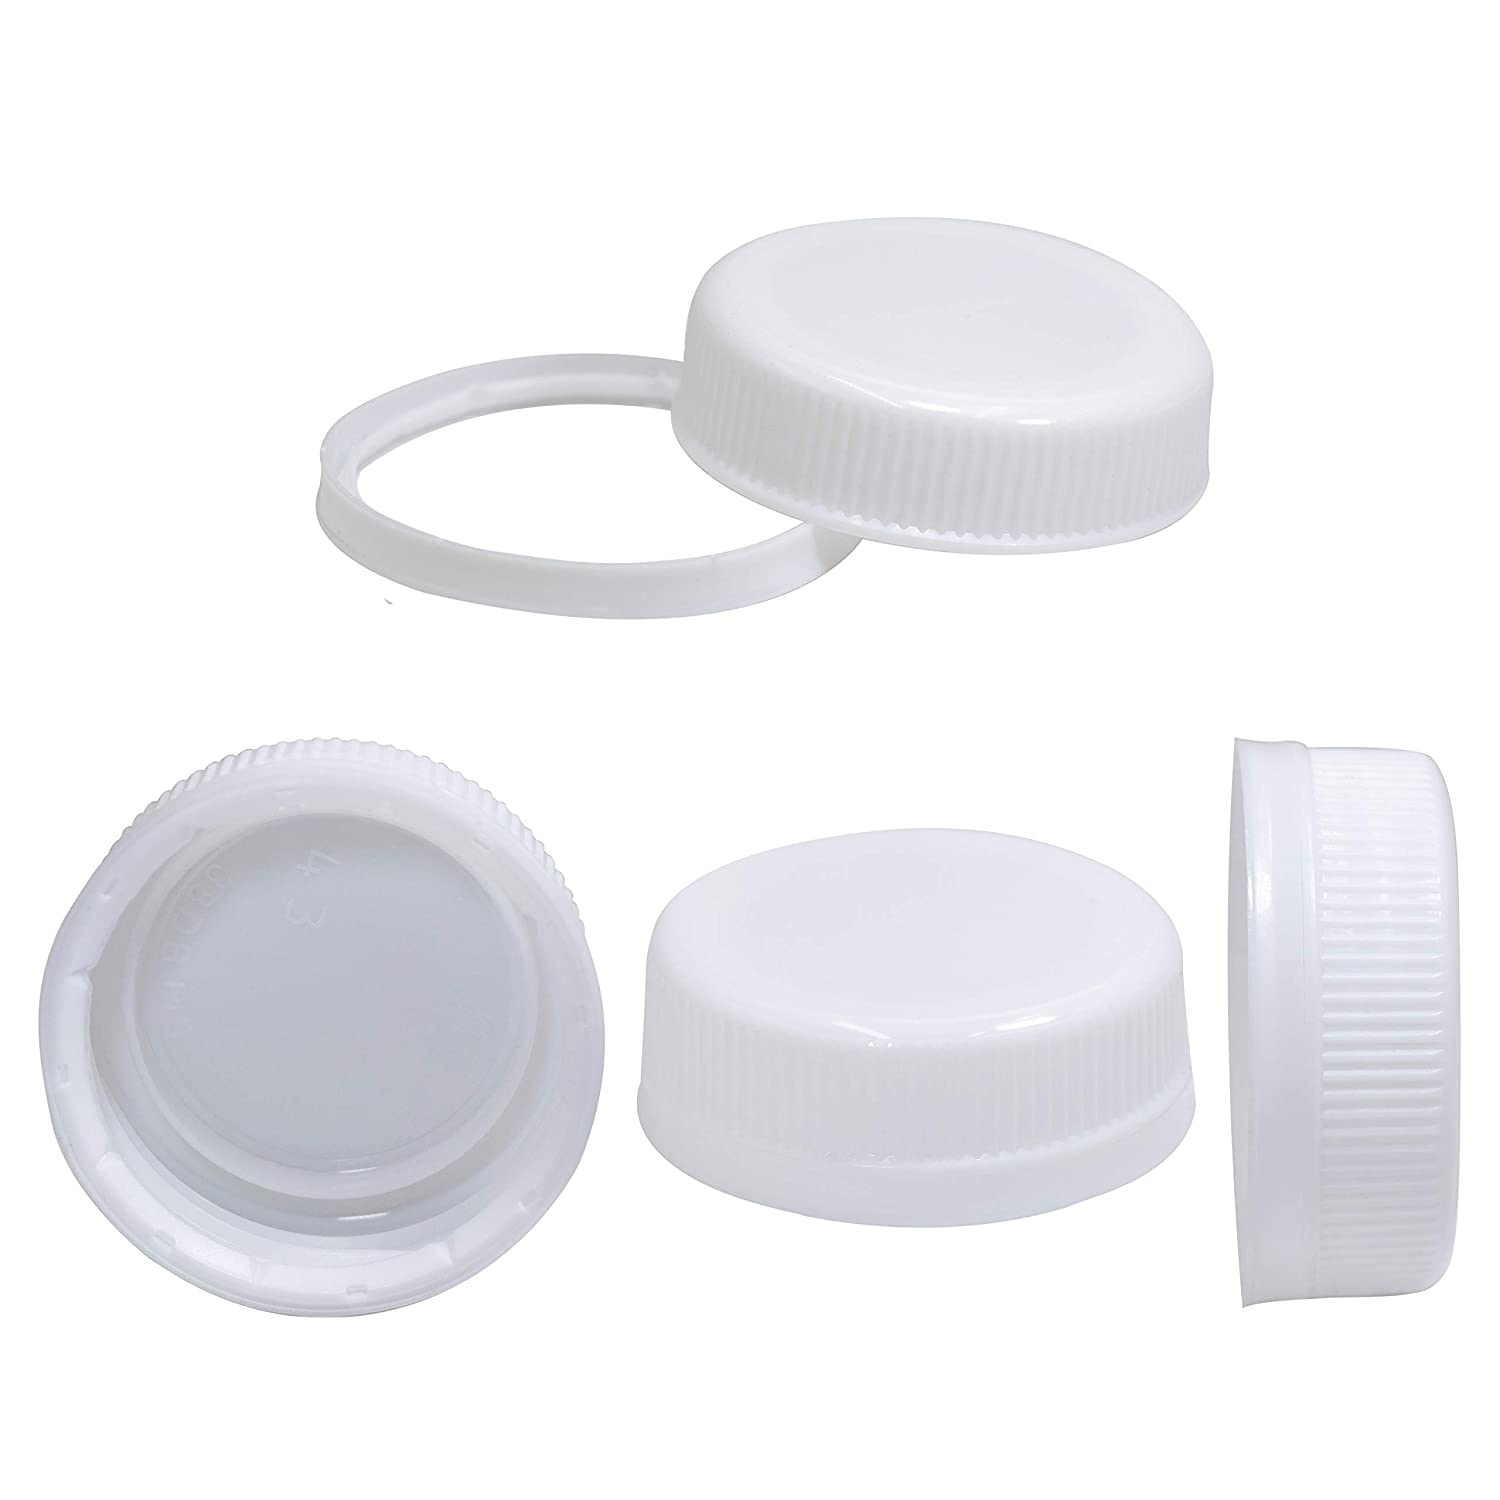 12 Plastic 1 oz Containers One Ounce With Snap On Lid White